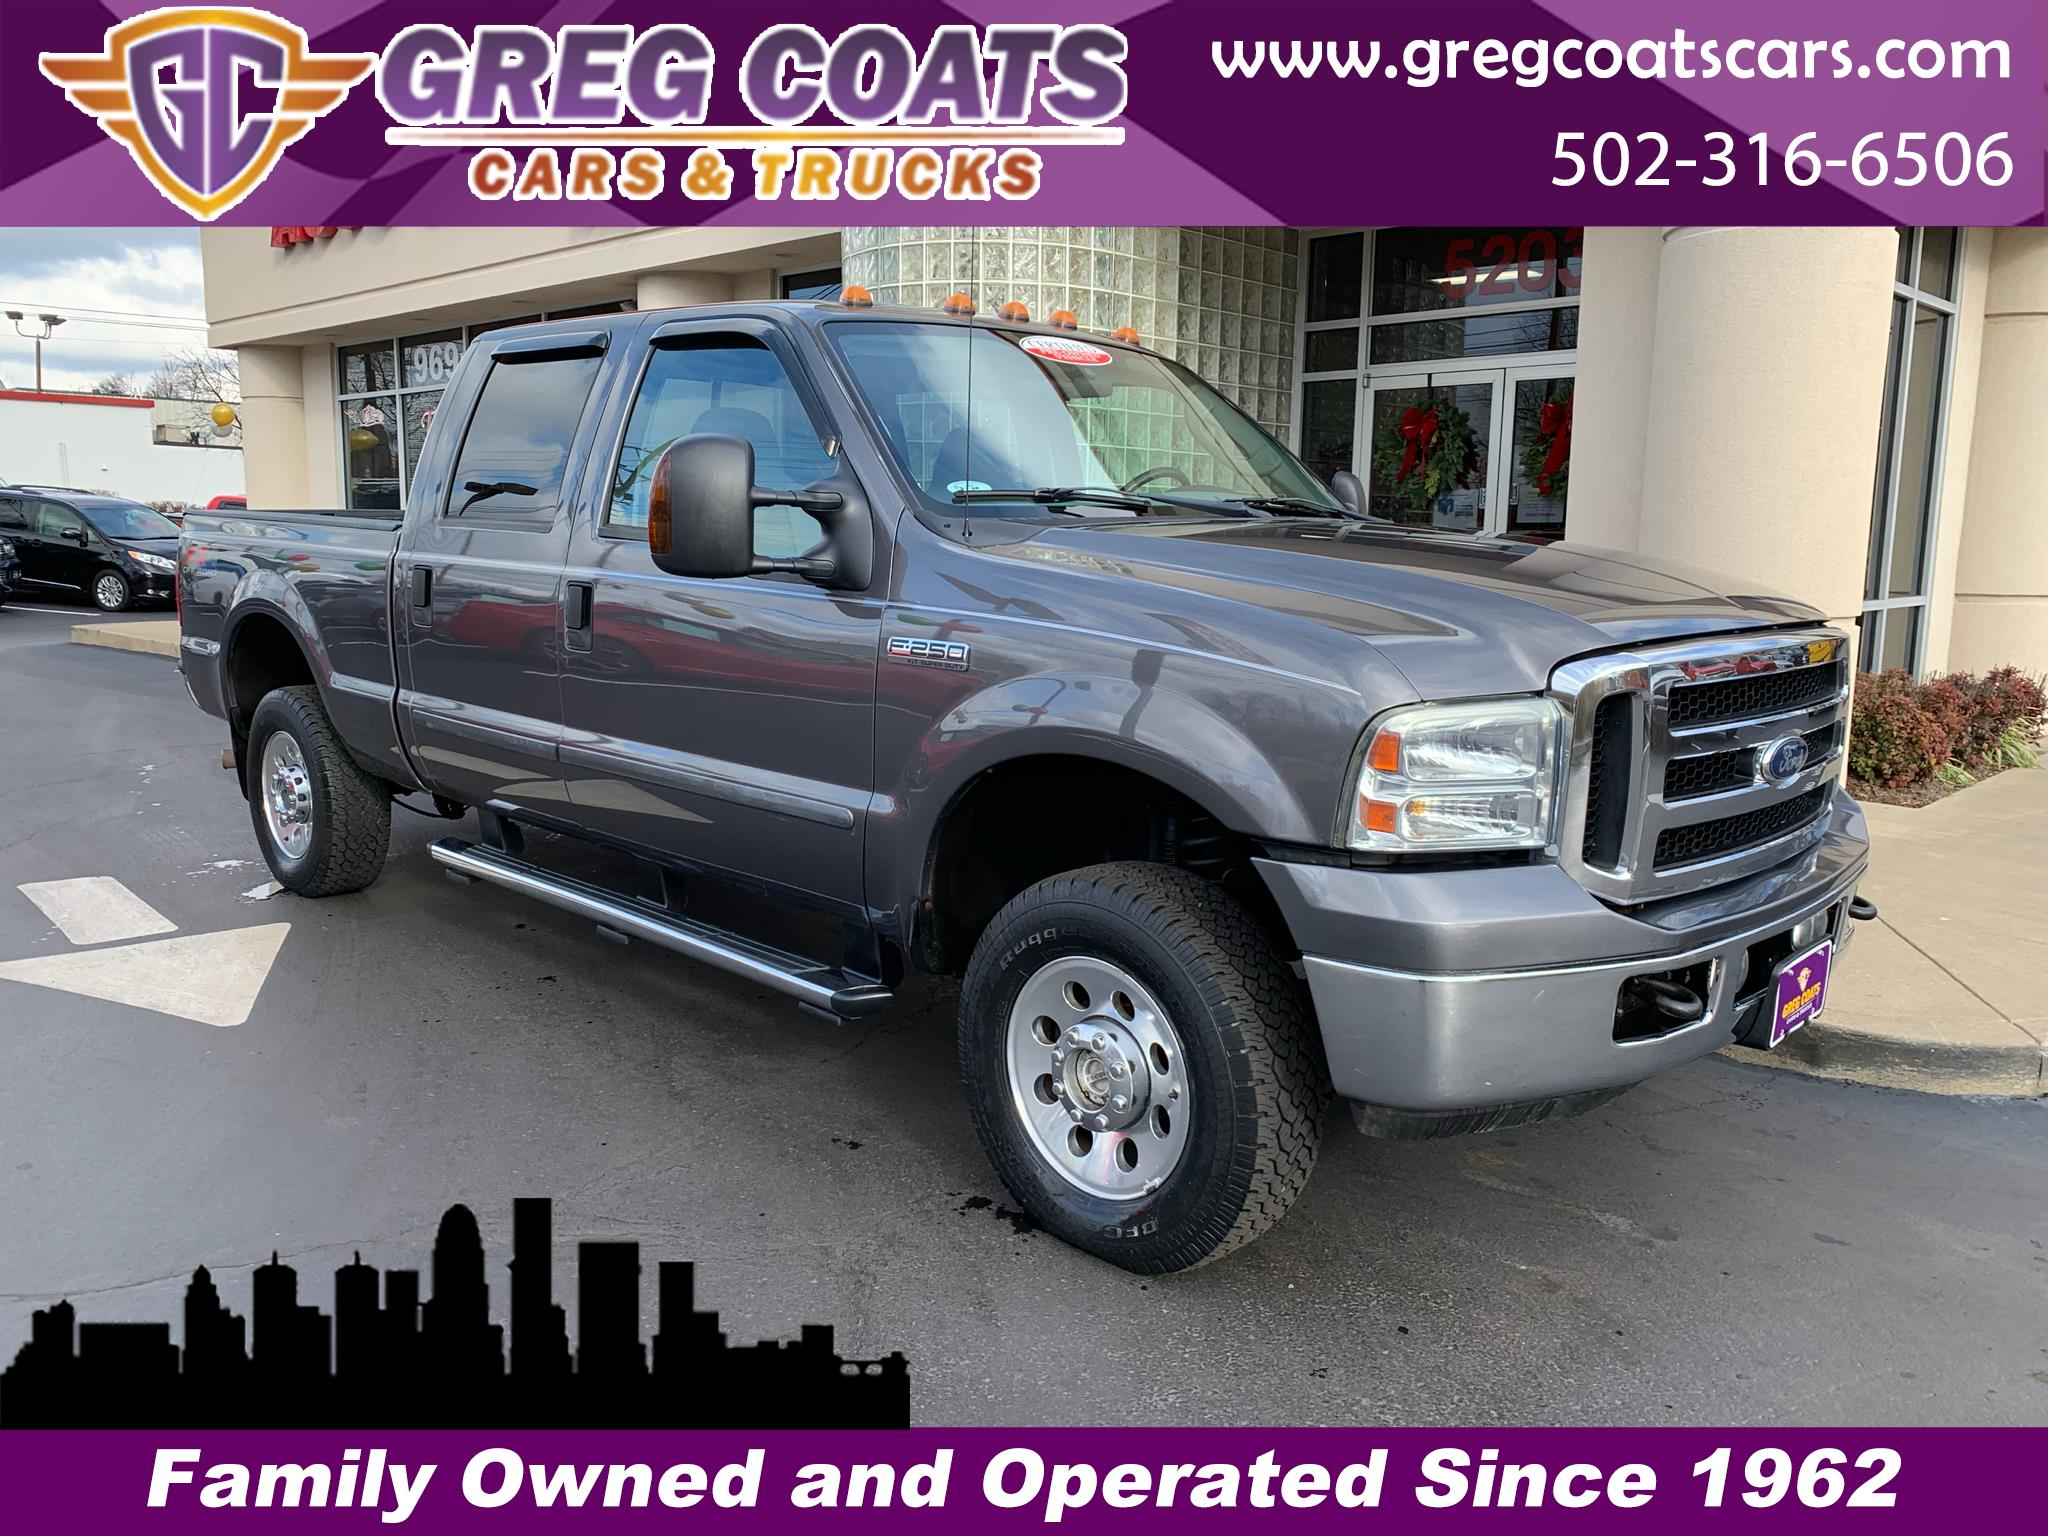 2007 Ford Super Duty F-250 XLT 4x4 FX4